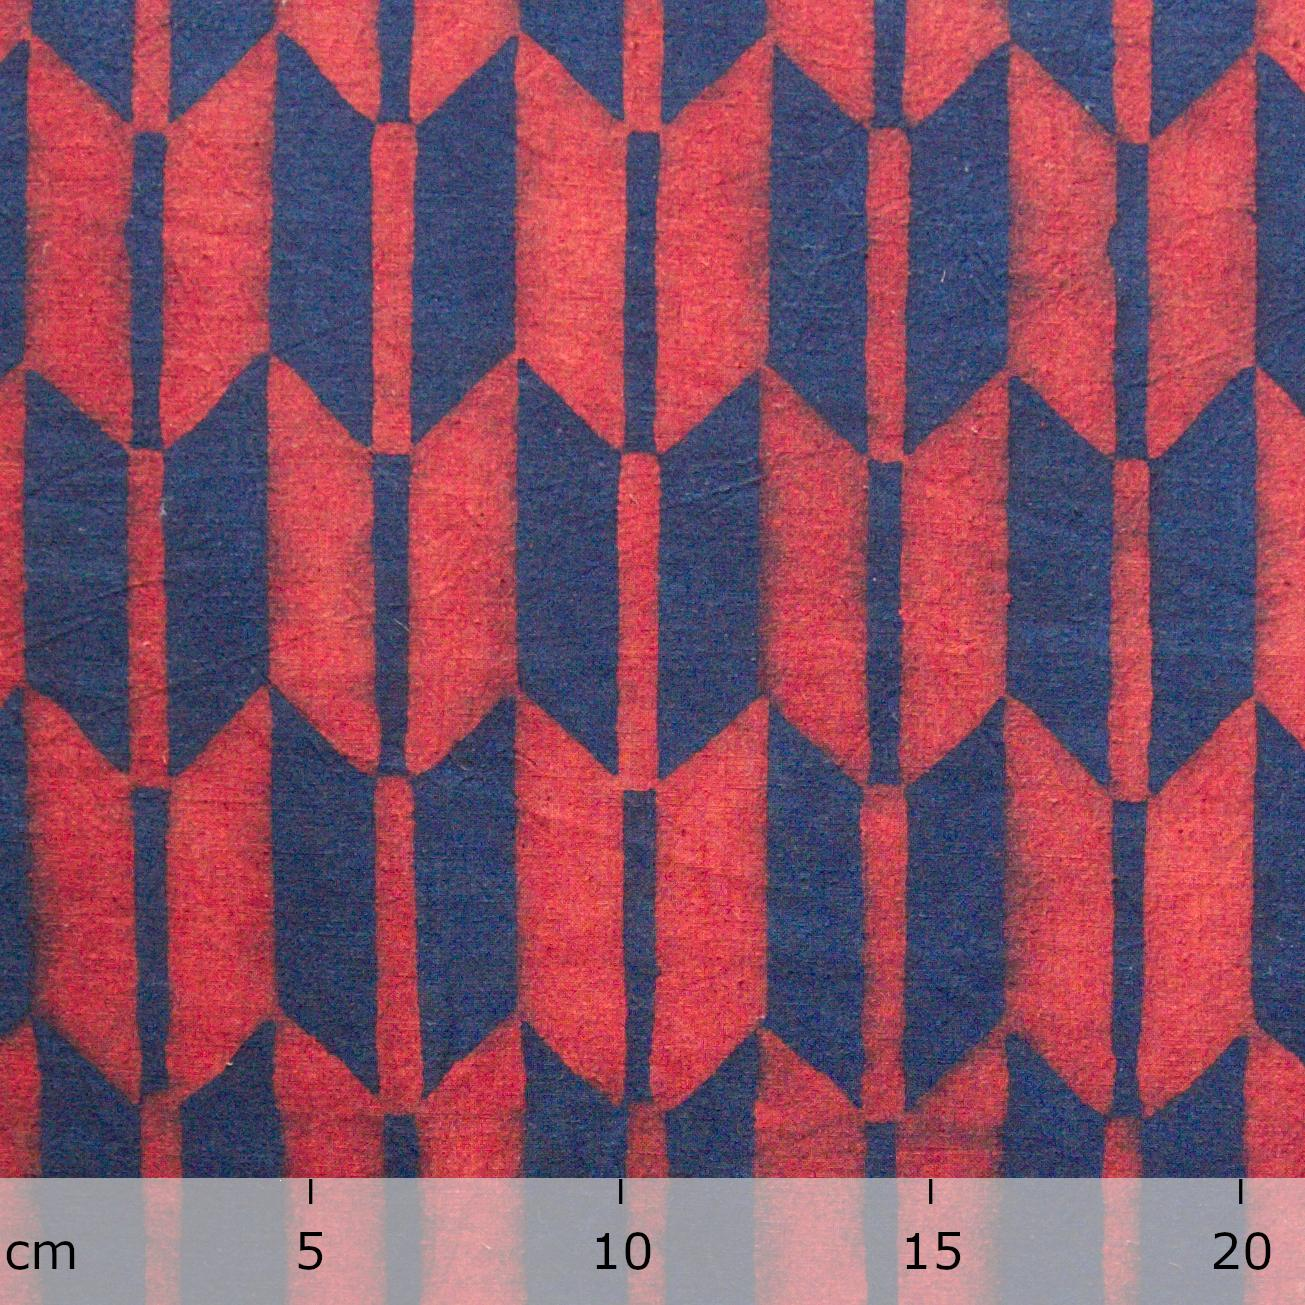 100% Block-Printed Cotton Fabric From India- Ajrak - Indigo Alizarin Fletching Print - Ruler